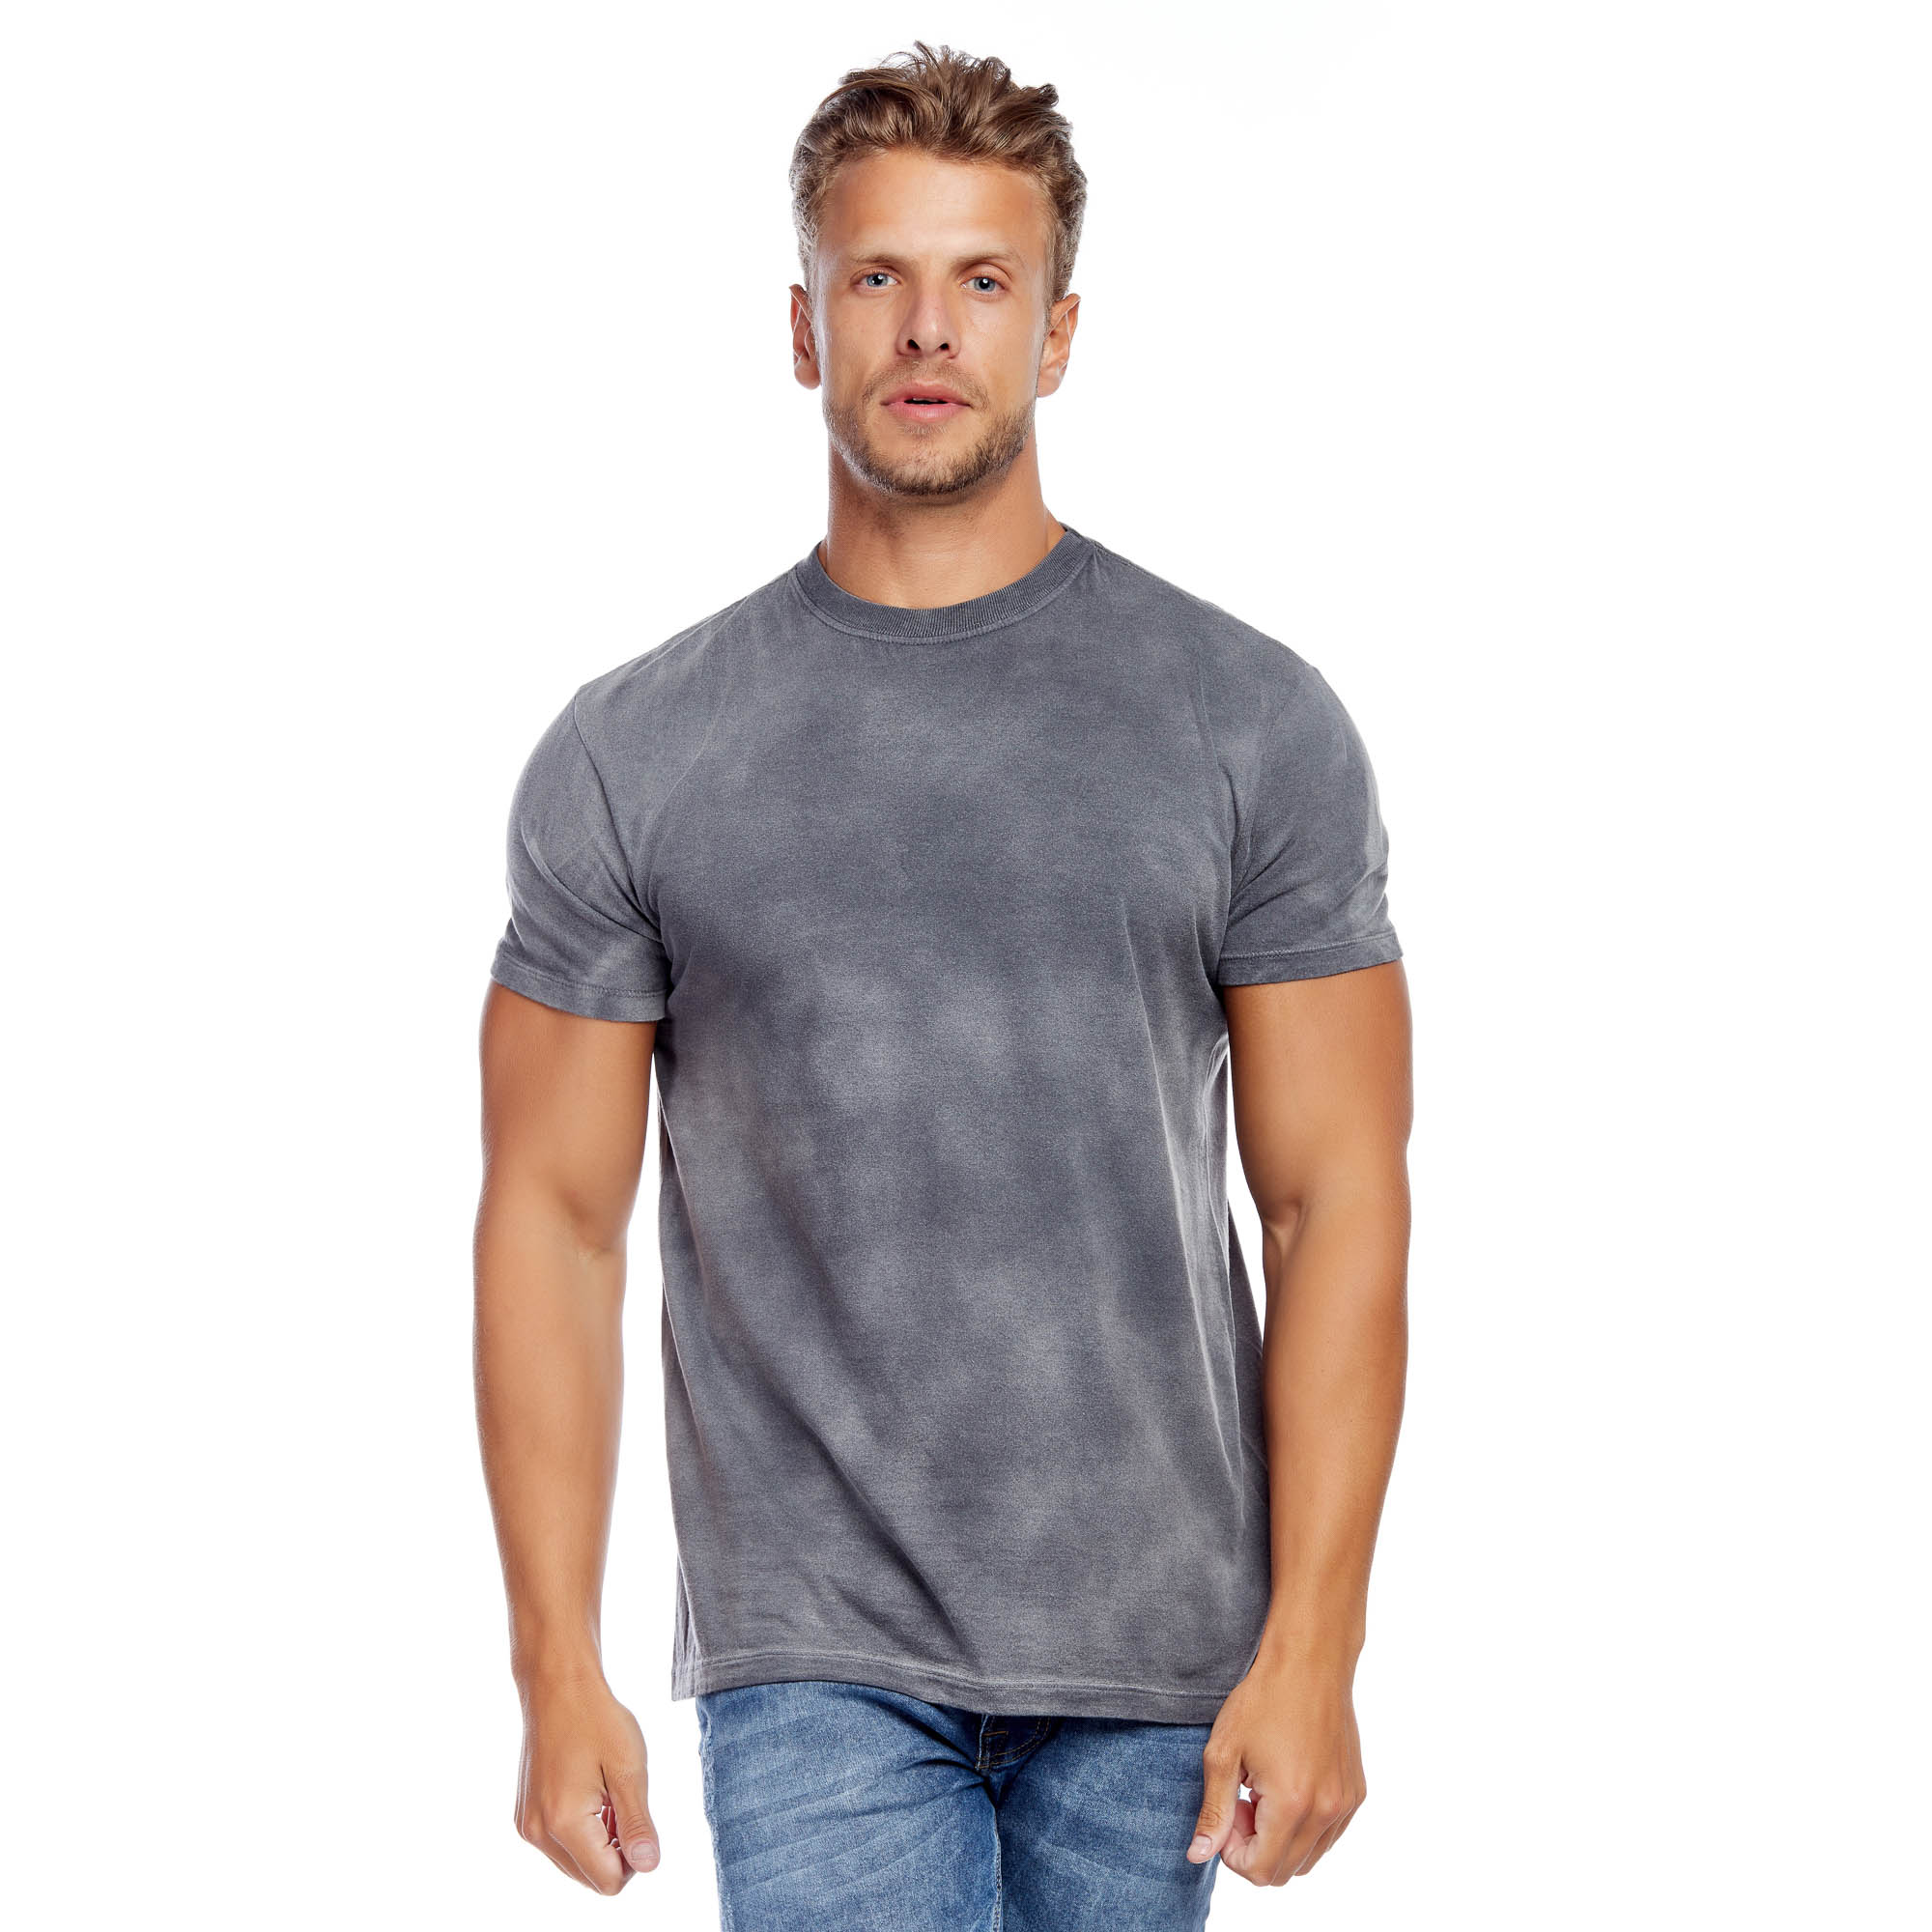 Camiseta Masculina Used Total Evolvee